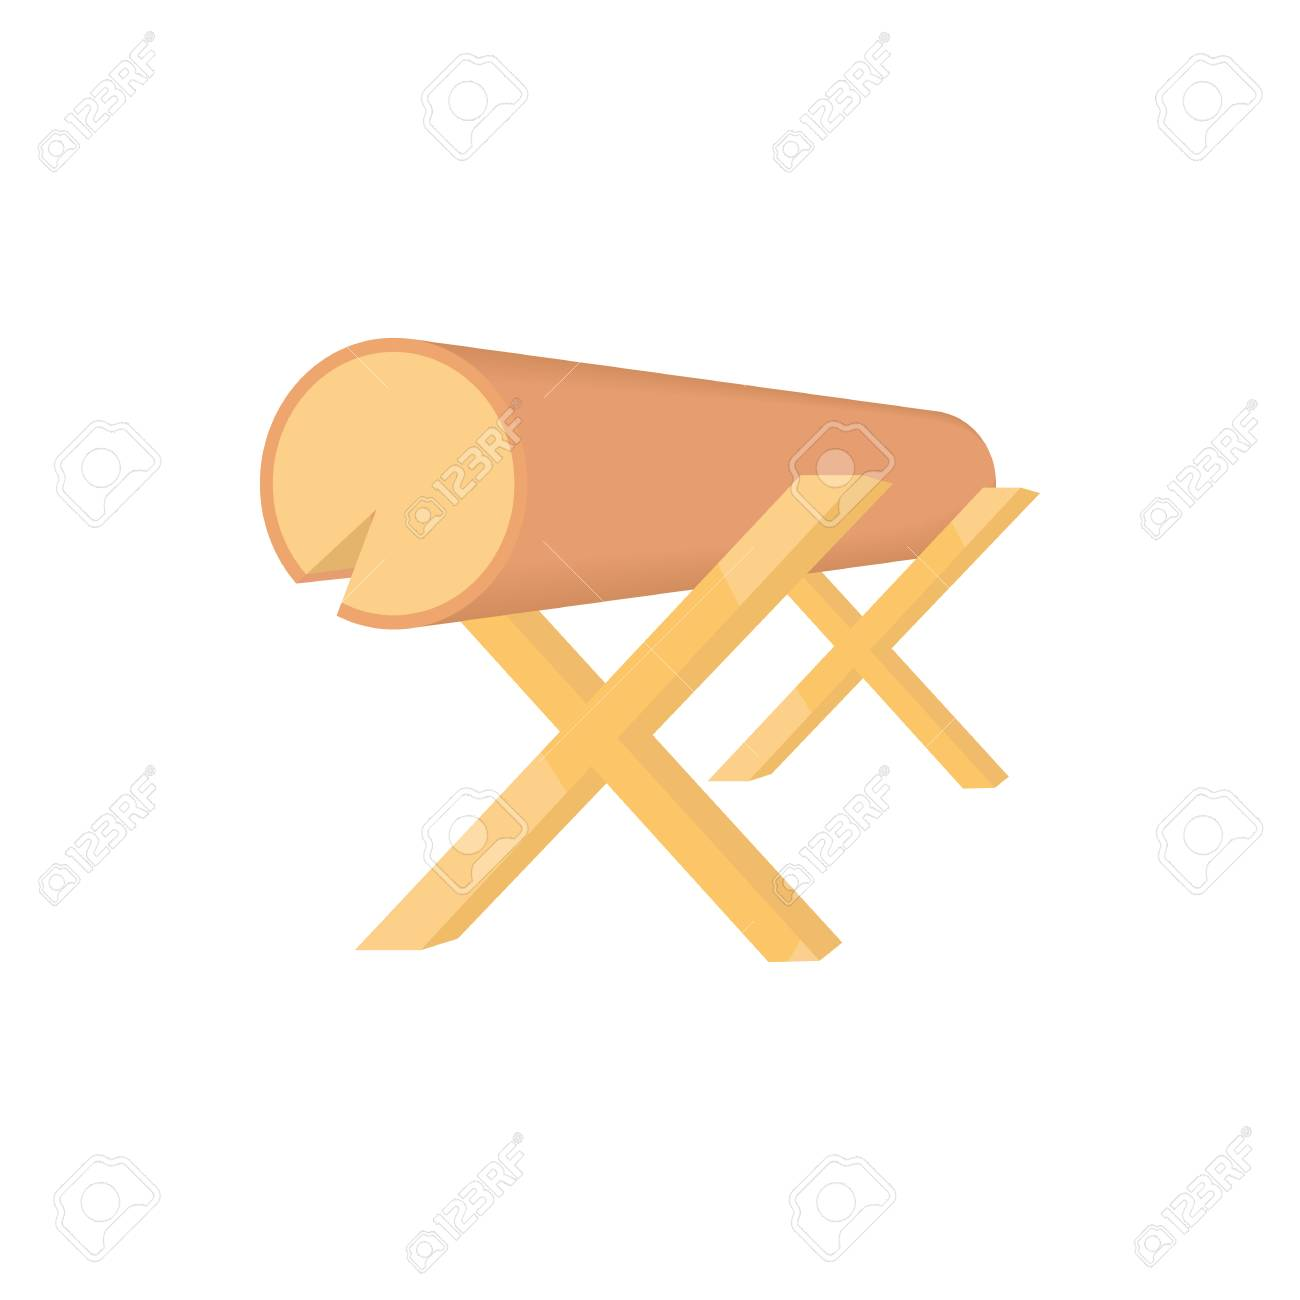 Marvelous Work Bench With The Log Icon In Cartoon Style On A White Background Beatyapartments Chair Design Images Beatyapartmentscom